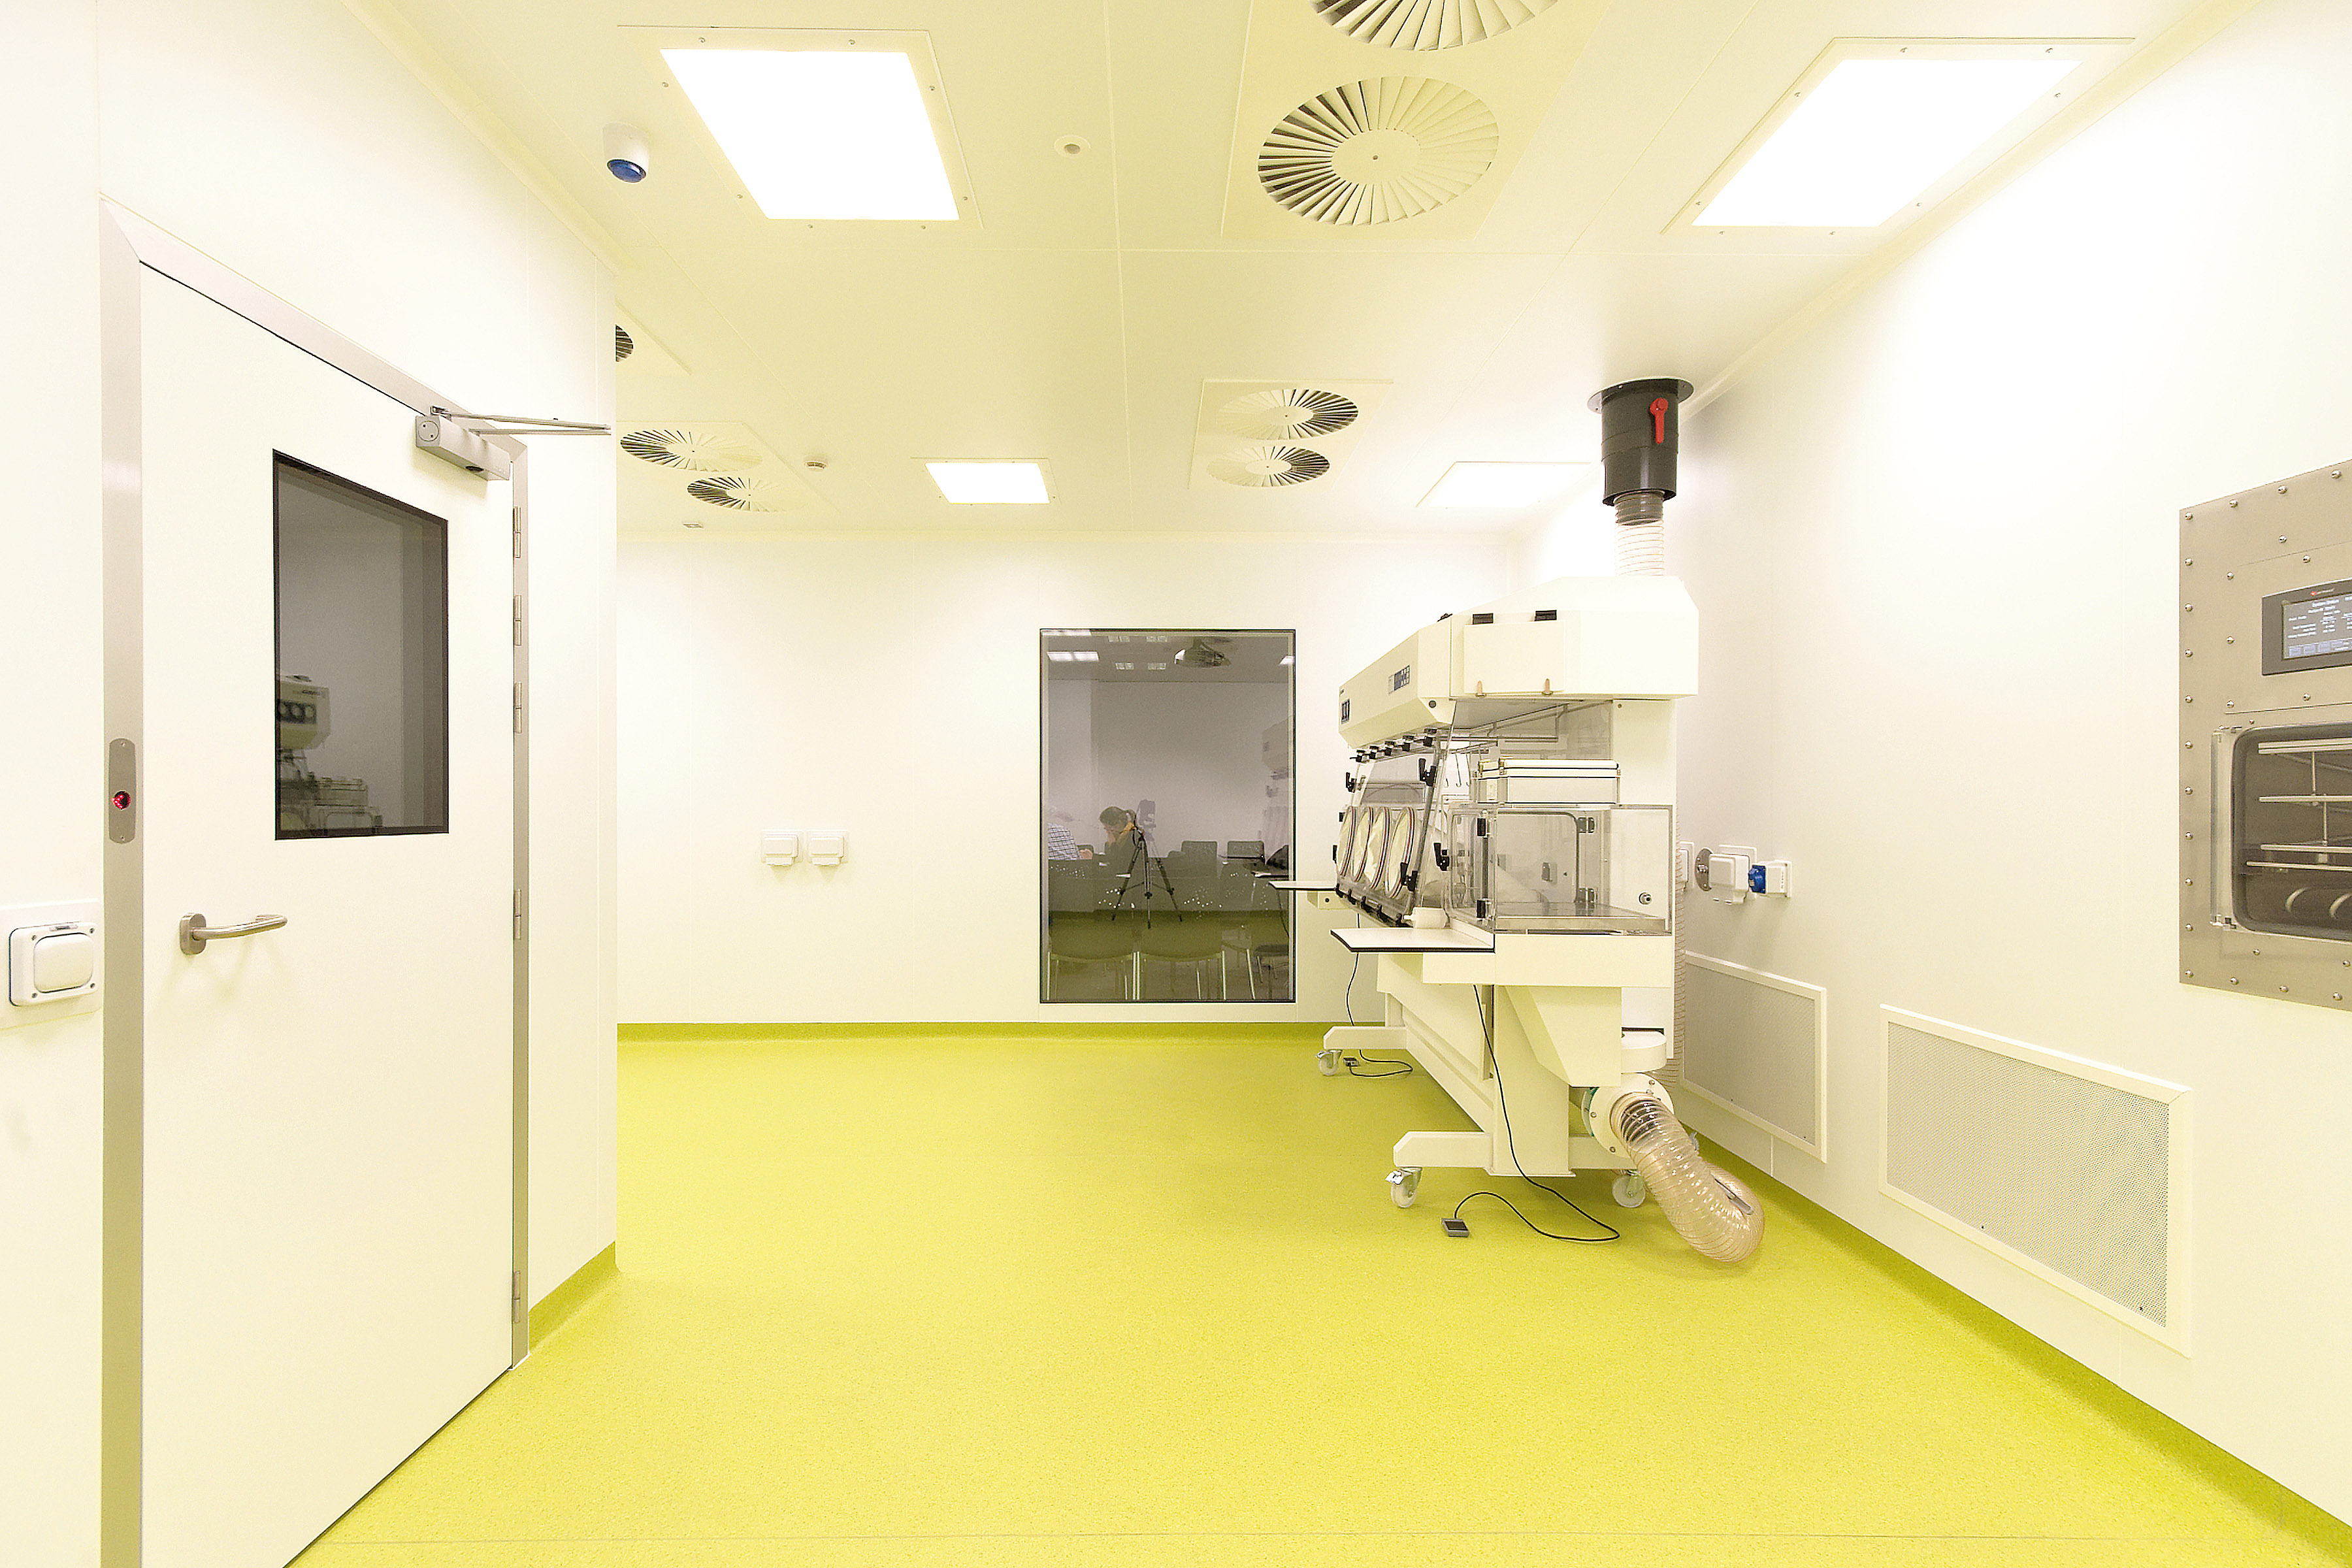 Clean Room: Bespoke Clean Room System For University Research Laboratories